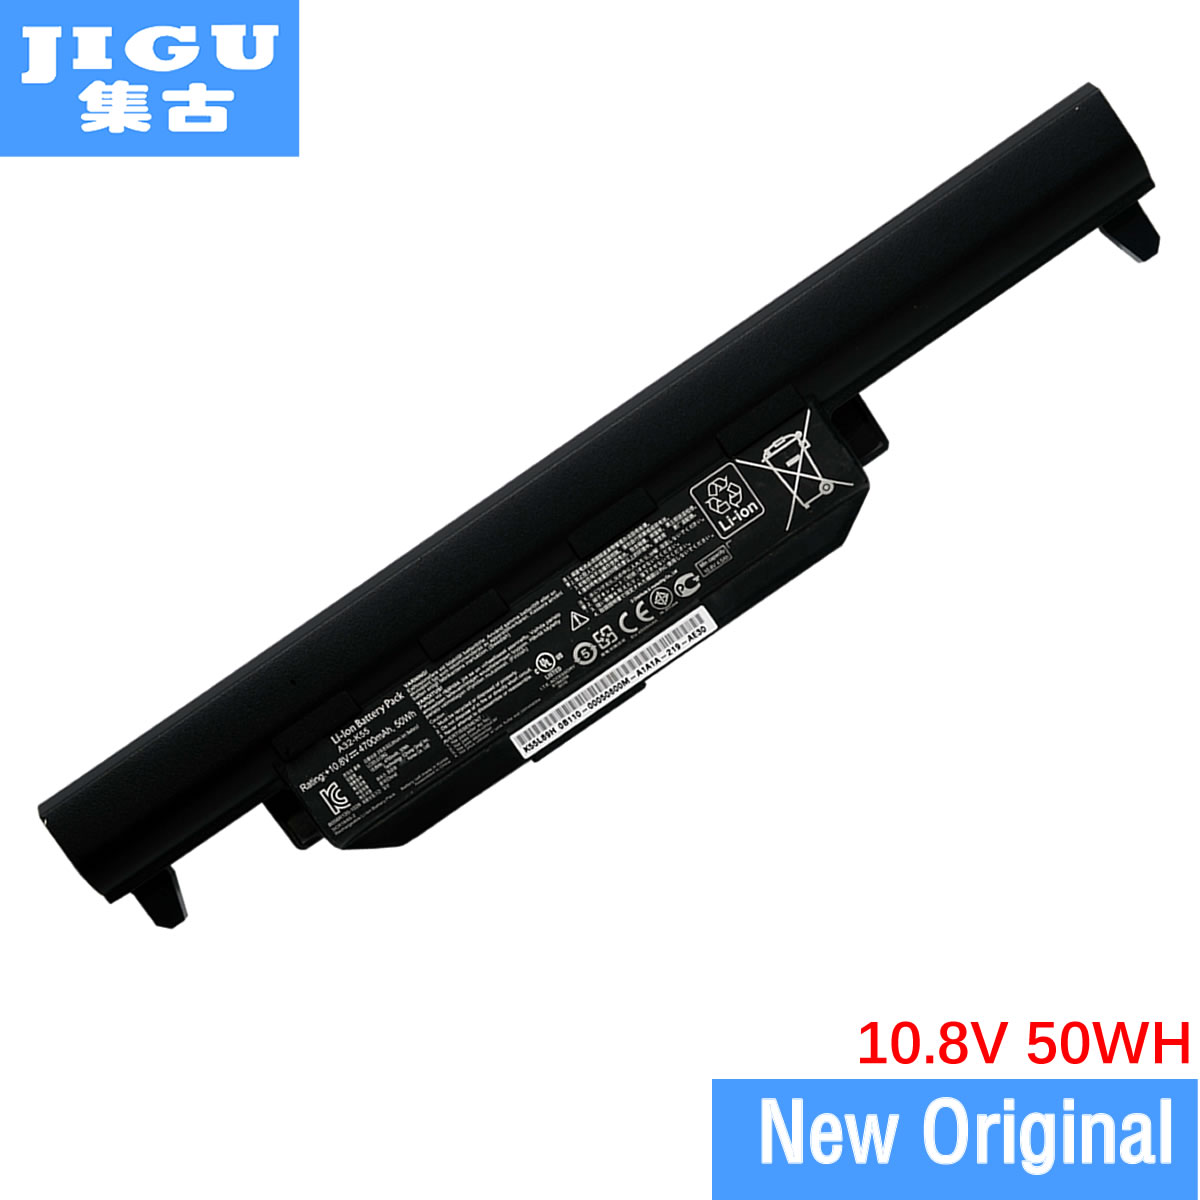 JIGU Original laptop Battery For Asus U57 X55 X55A X55C X55U X55V X55VD X75 X75A X75V X75VD 10.8V 4700mAH